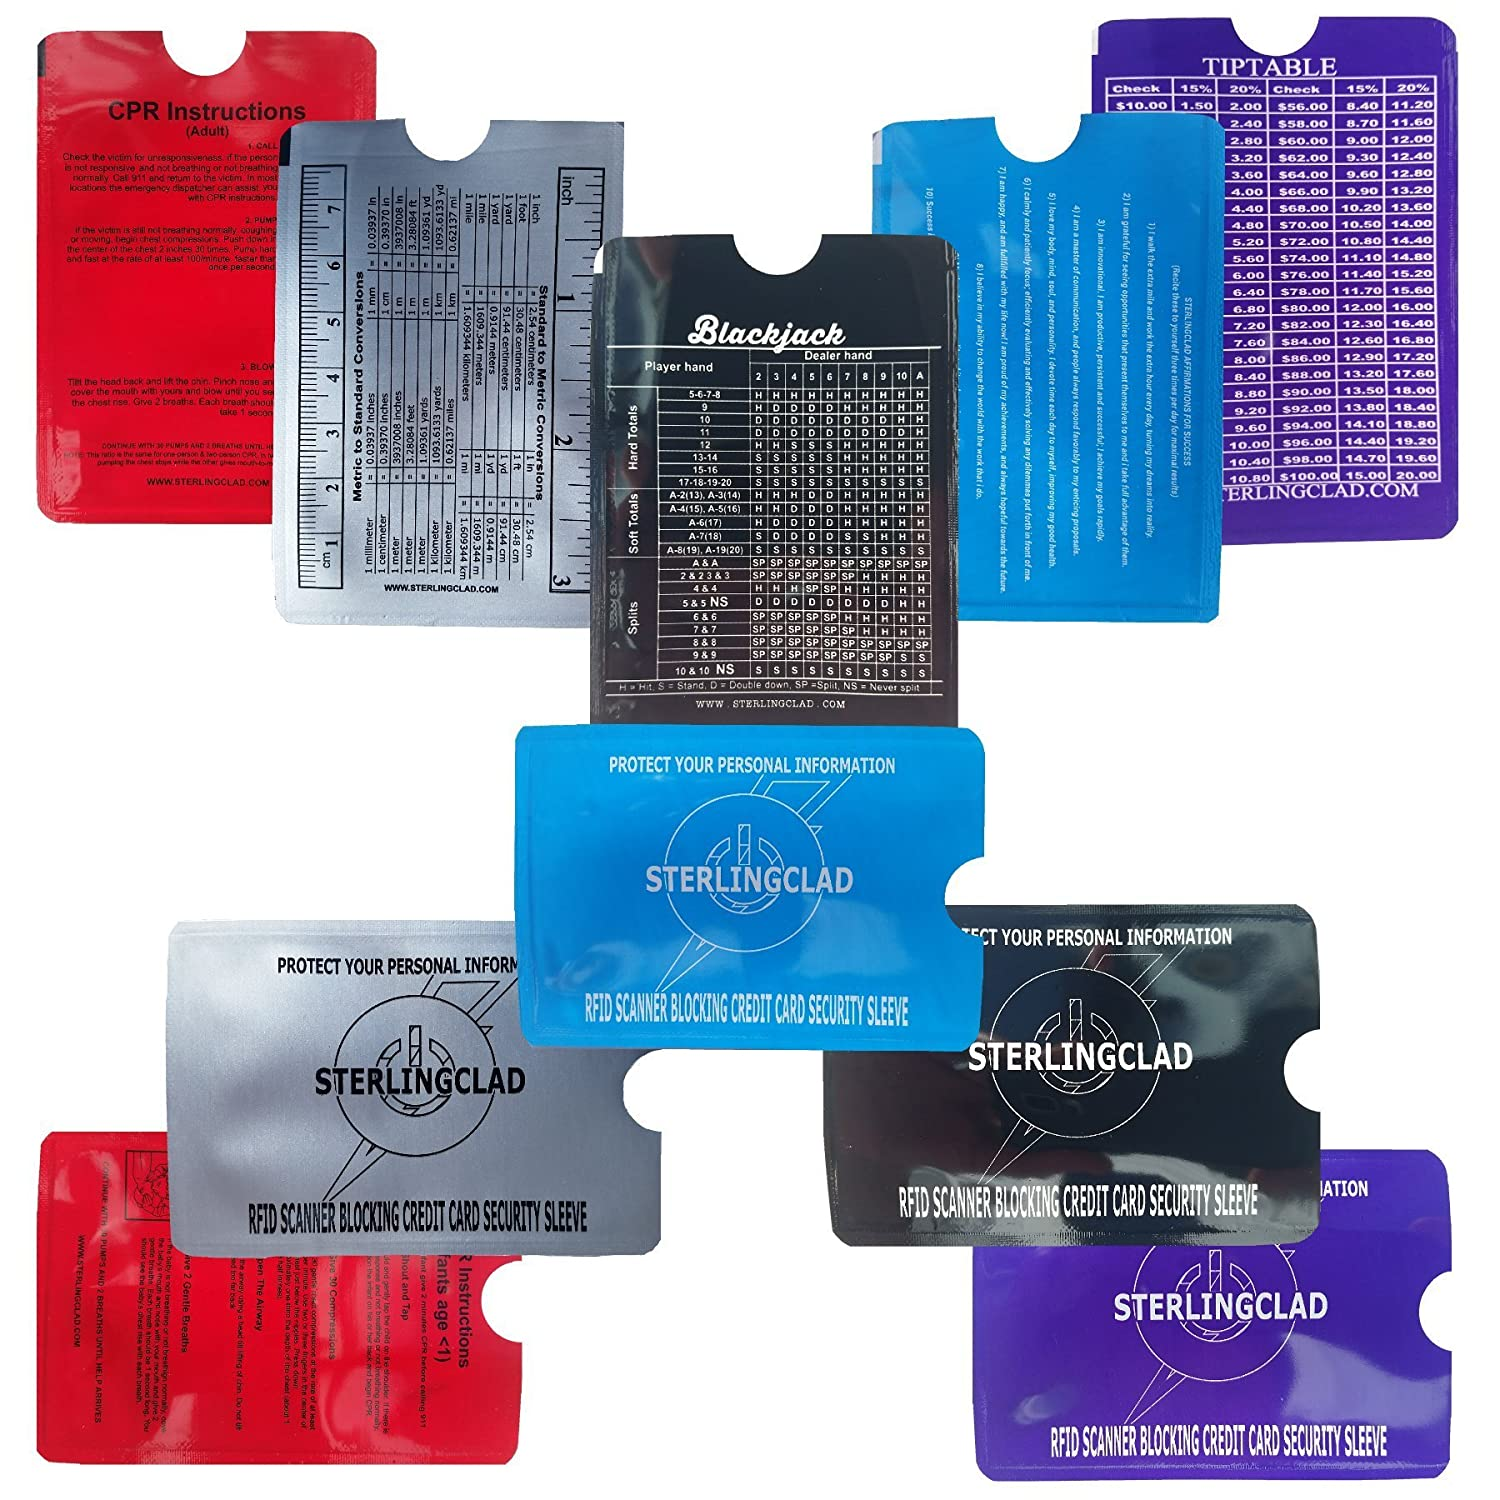 Stocking stuffers, Credit Card and ID BLOCKER Sleeves with Math Flash card, Tiptable, Rulers, CPR, stop ID Theft- 2 of each design. Best Stocking stuffer STERLINGCLAD